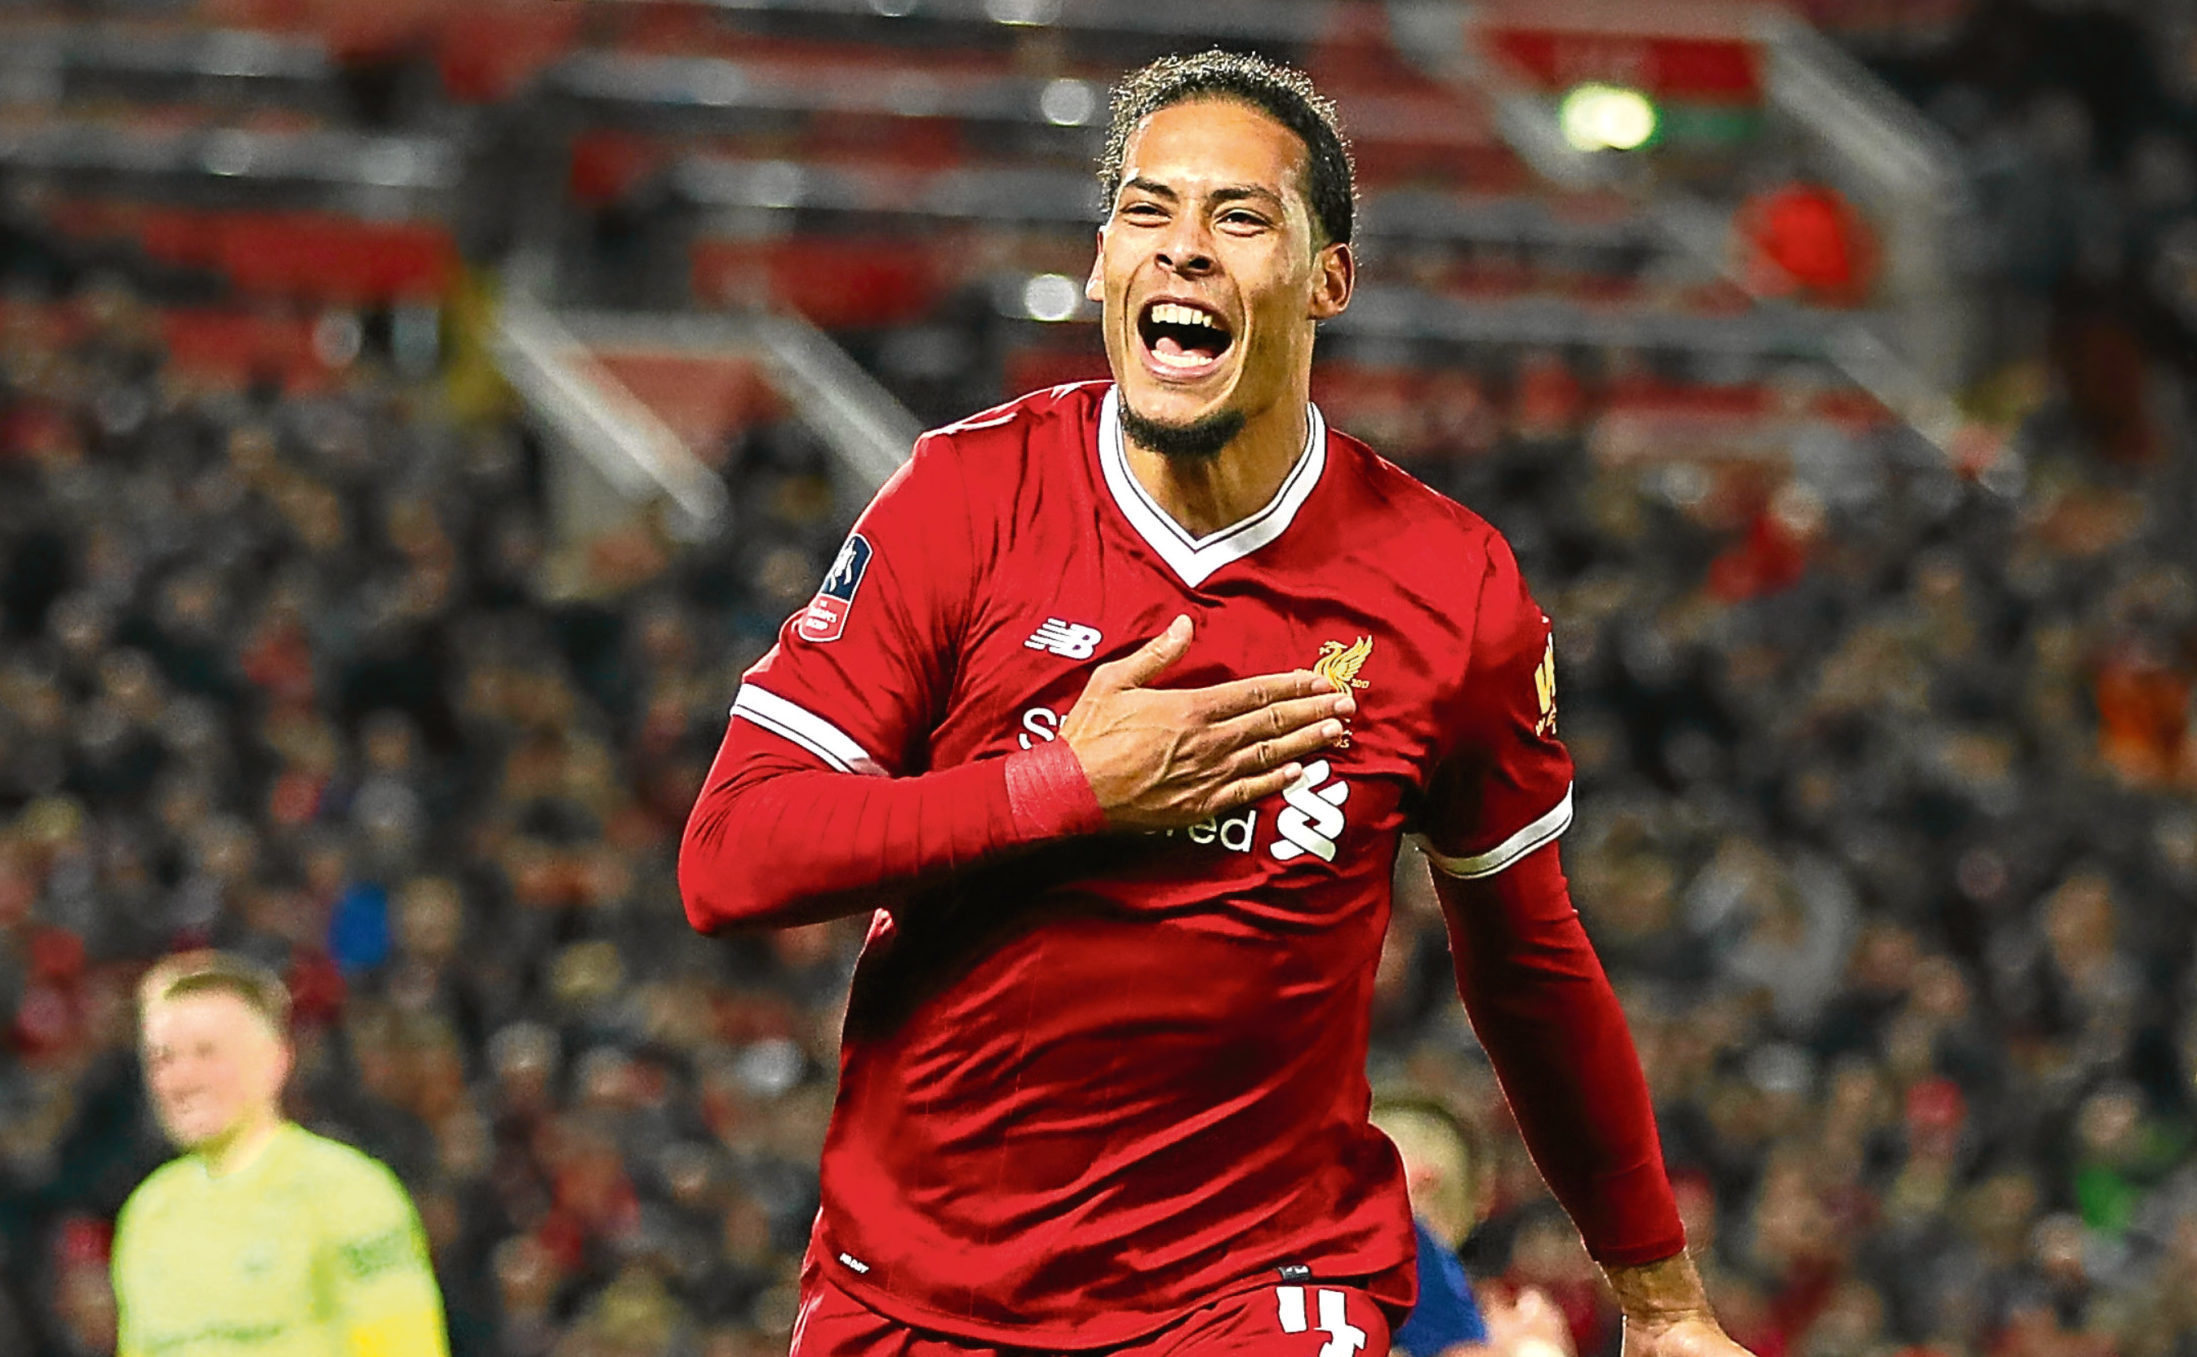 Virgil van Dijk (Clive Brunskill/Getty Images)